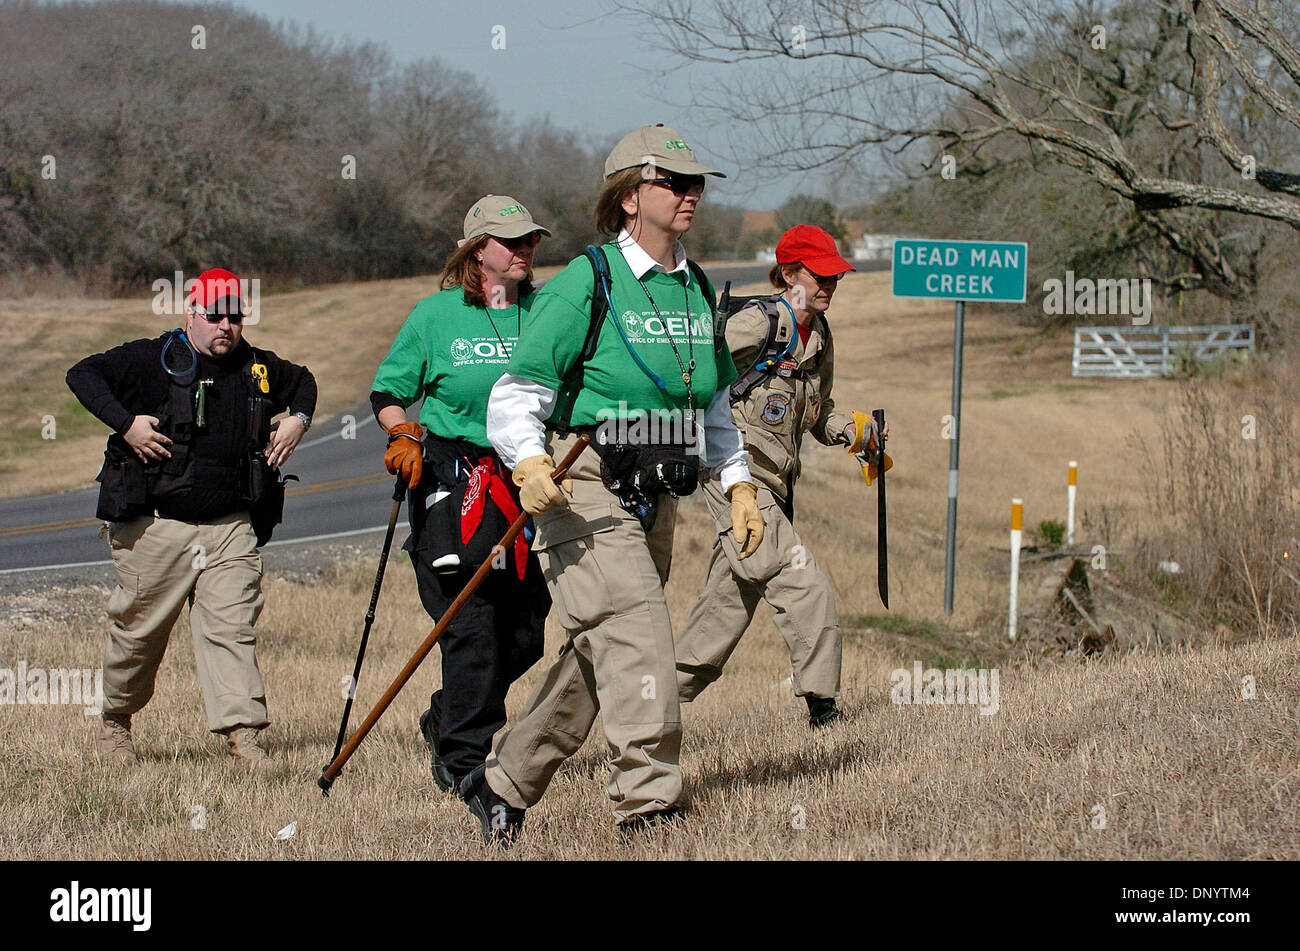 Feb 09, 2006; Seguin, TX, USA; Volunteers from Austin area search and rescue organizations cross over FM 725 on Dead Man Creek near Seguin in a search for clues involving the disappearance of a Seguin mother. Mandatory Credit: Photo by Tom Reel/San Antonio Express-News /ZUMA Press. (©) Copyright 2006 by San Antonio Express-News - Stock Image